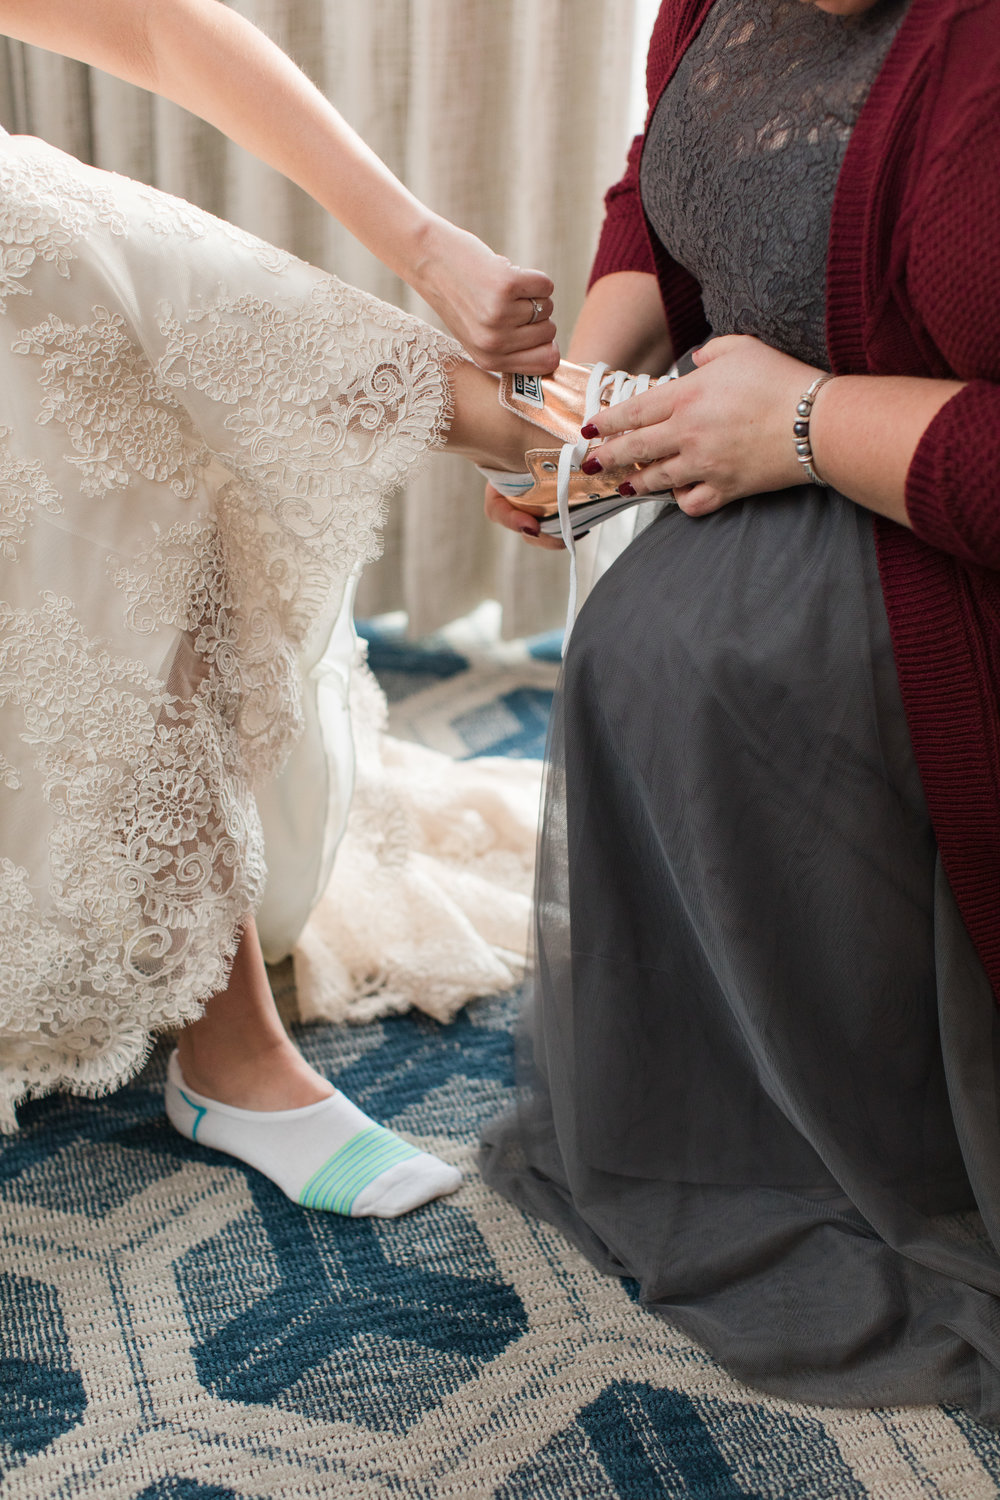 Maid of honor putting on bride's rose gold converse wedding shoes